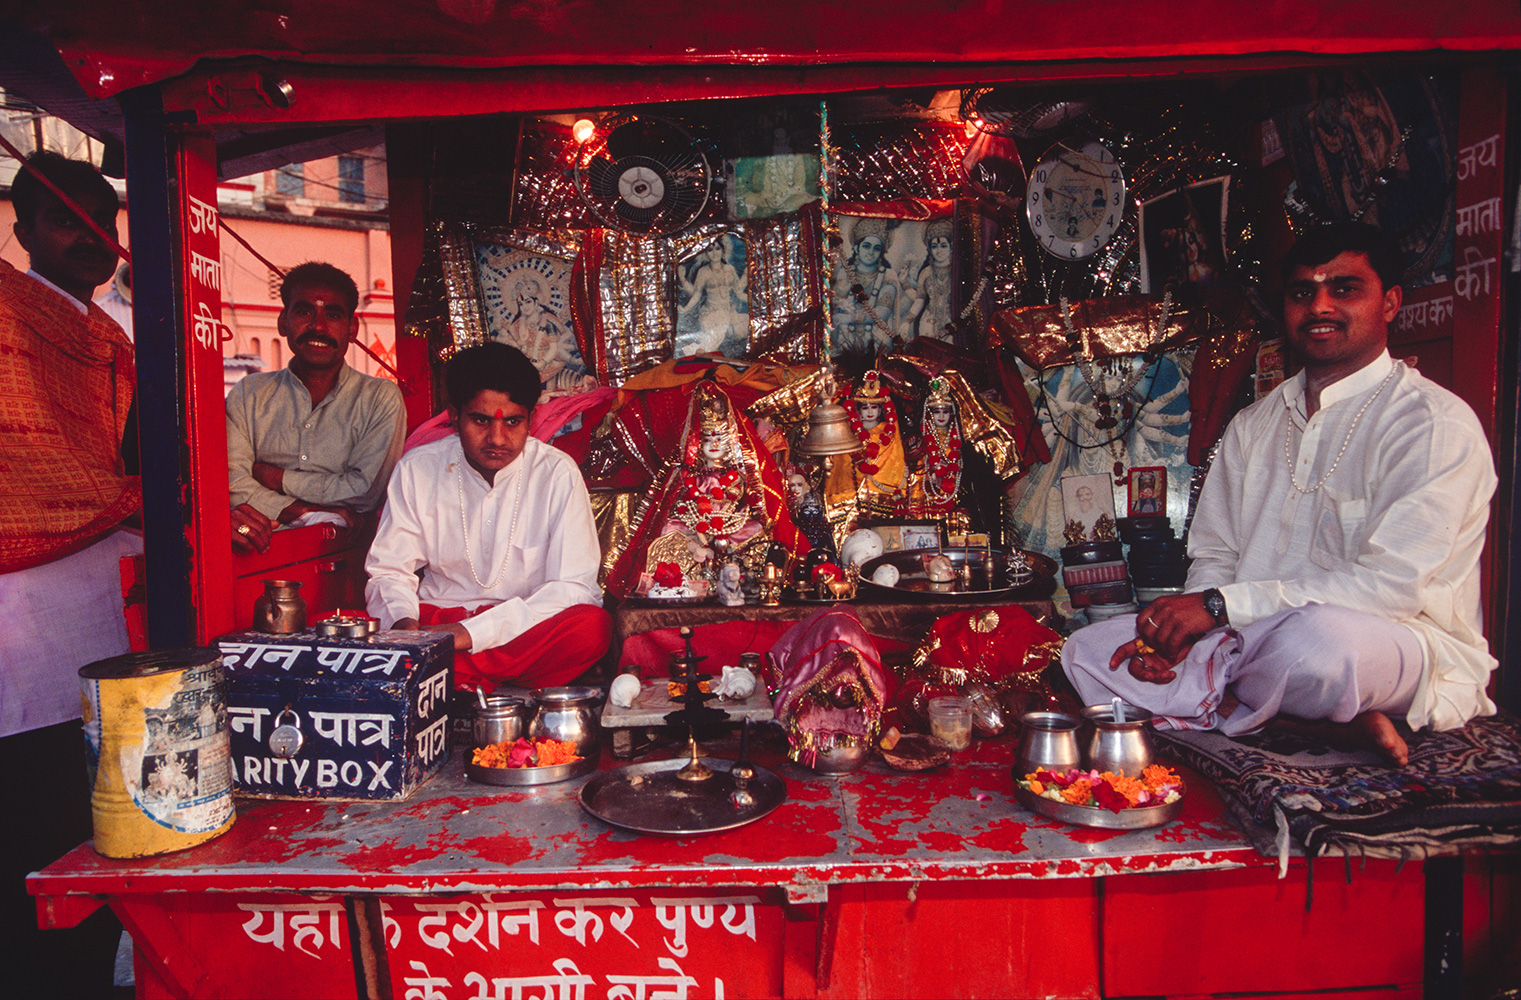 haridwar_shrine_wallahs_2004RVP